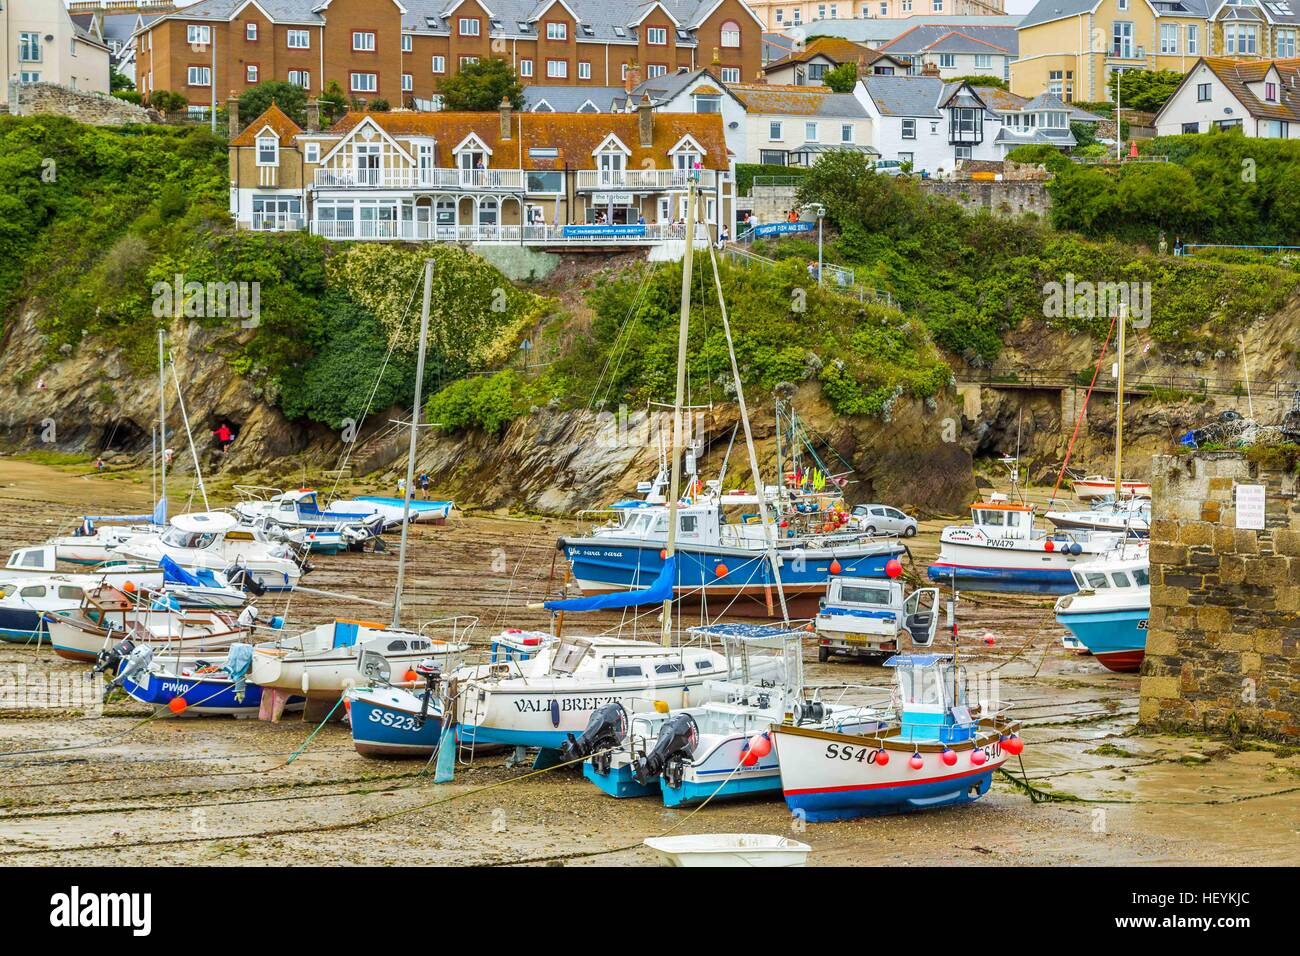 Boats in the picturesque harbour of Newquay in Cornwall, UK - Stock Image